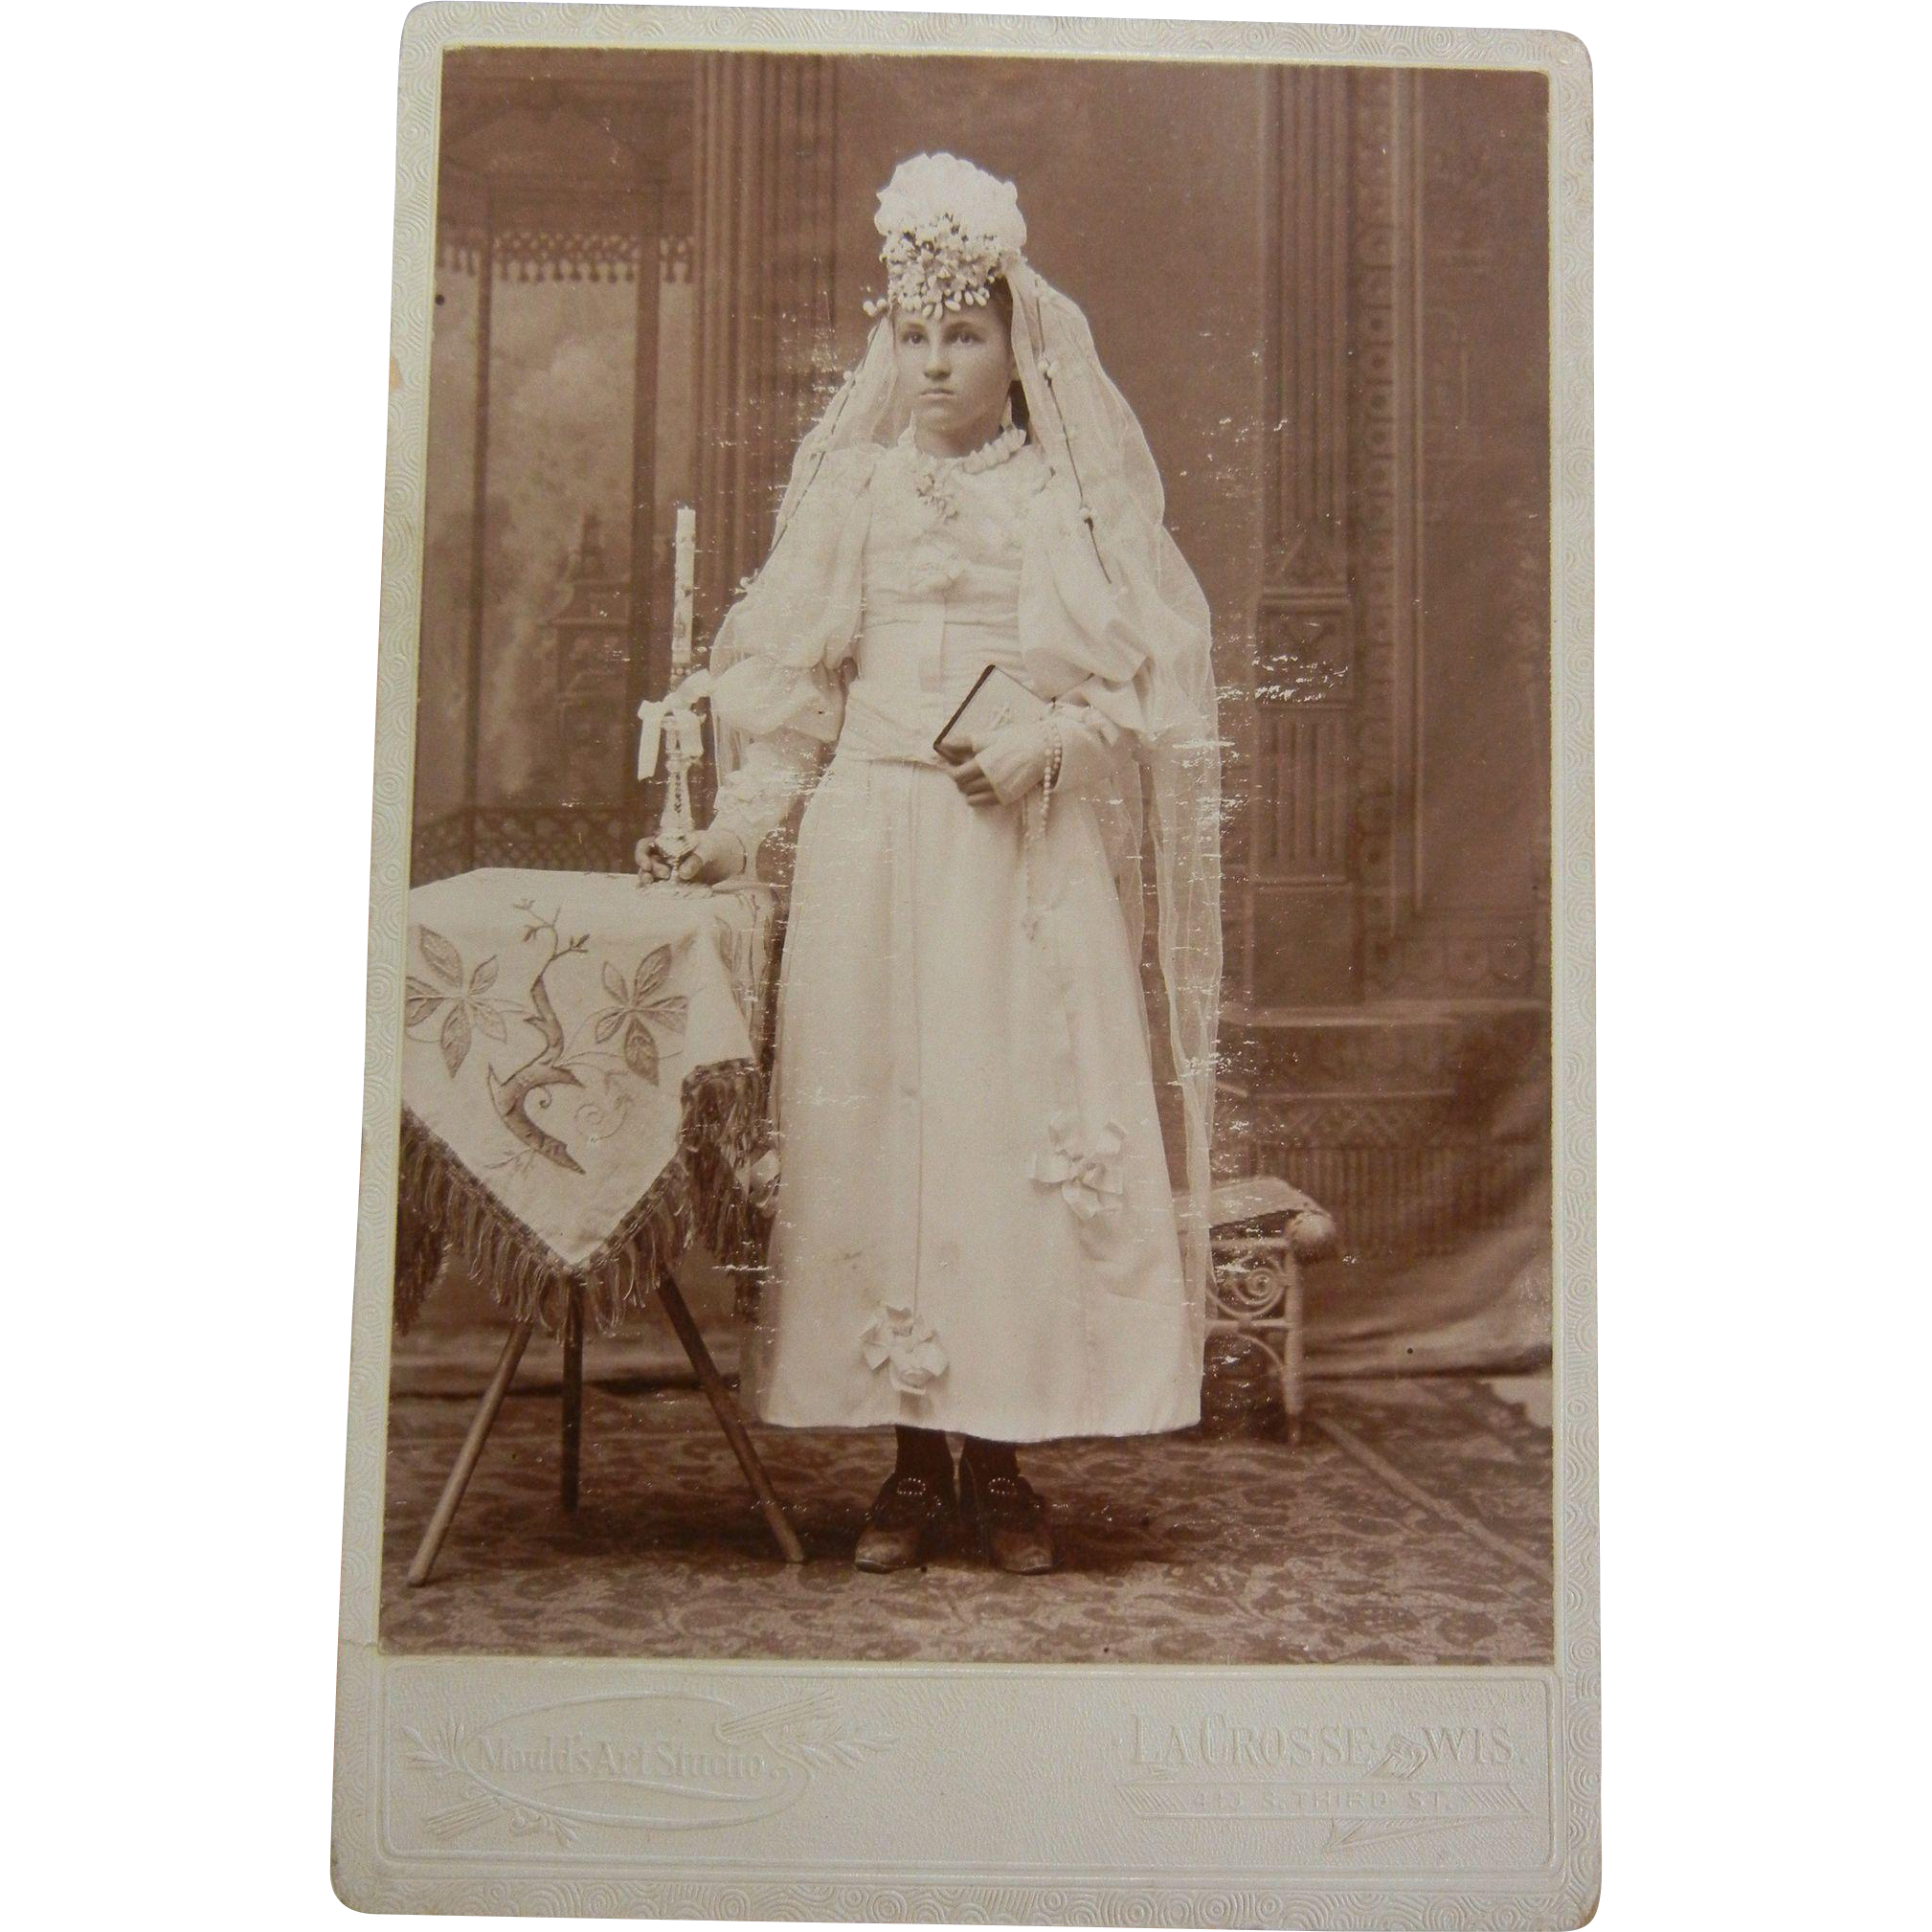 Vintage B&W Cabinet Photograph - Girl First Communion Decorated With Wax Beaded Headdress